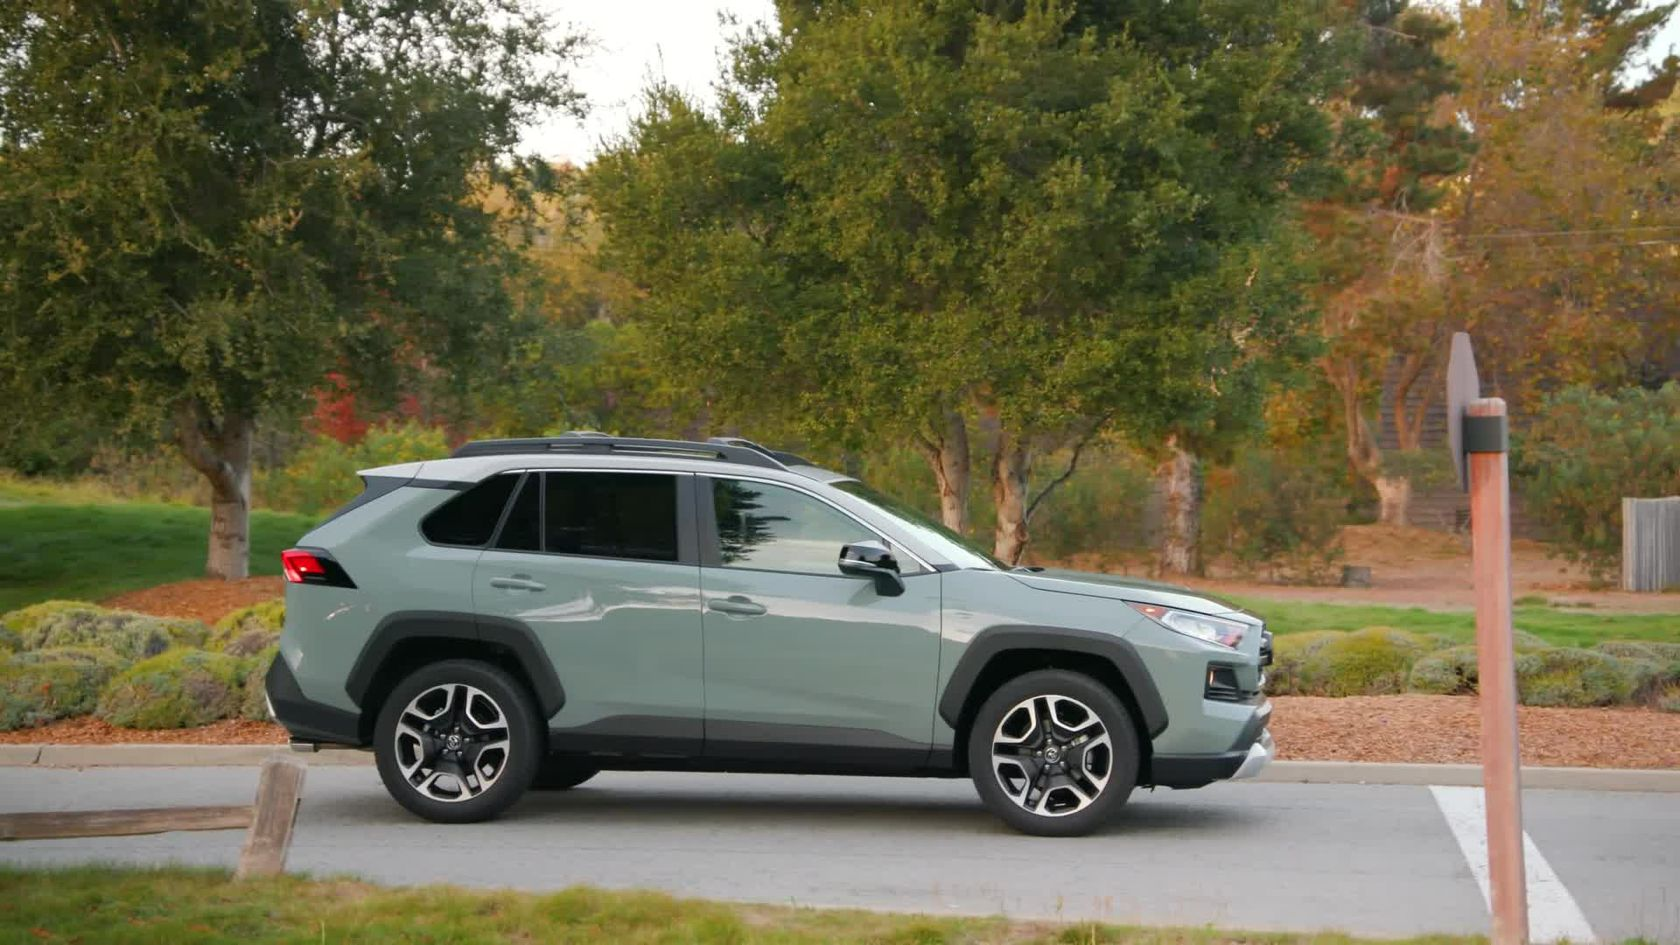 2019 Toyota RAV4 Adventure Lunar Rock Ice Edge Roof B-roll